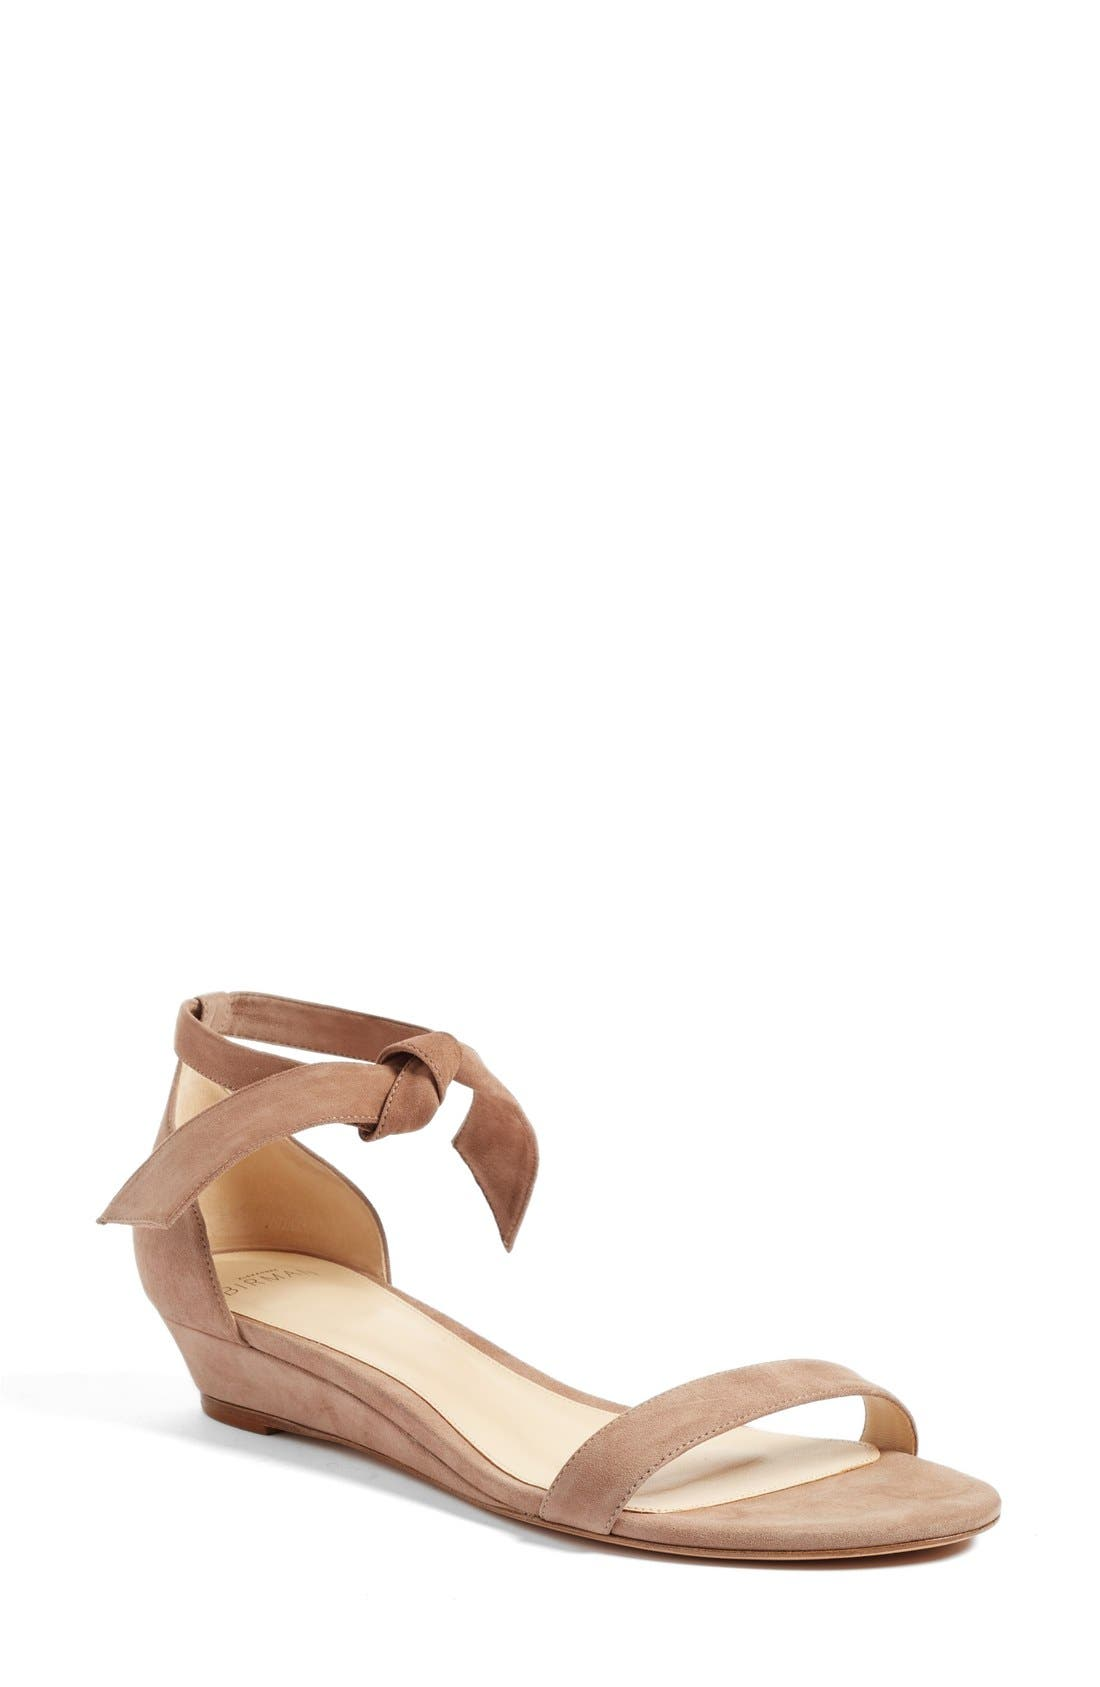 Atena Tie Strap Wedge Sandal,                             Main thumbnail 1, color,